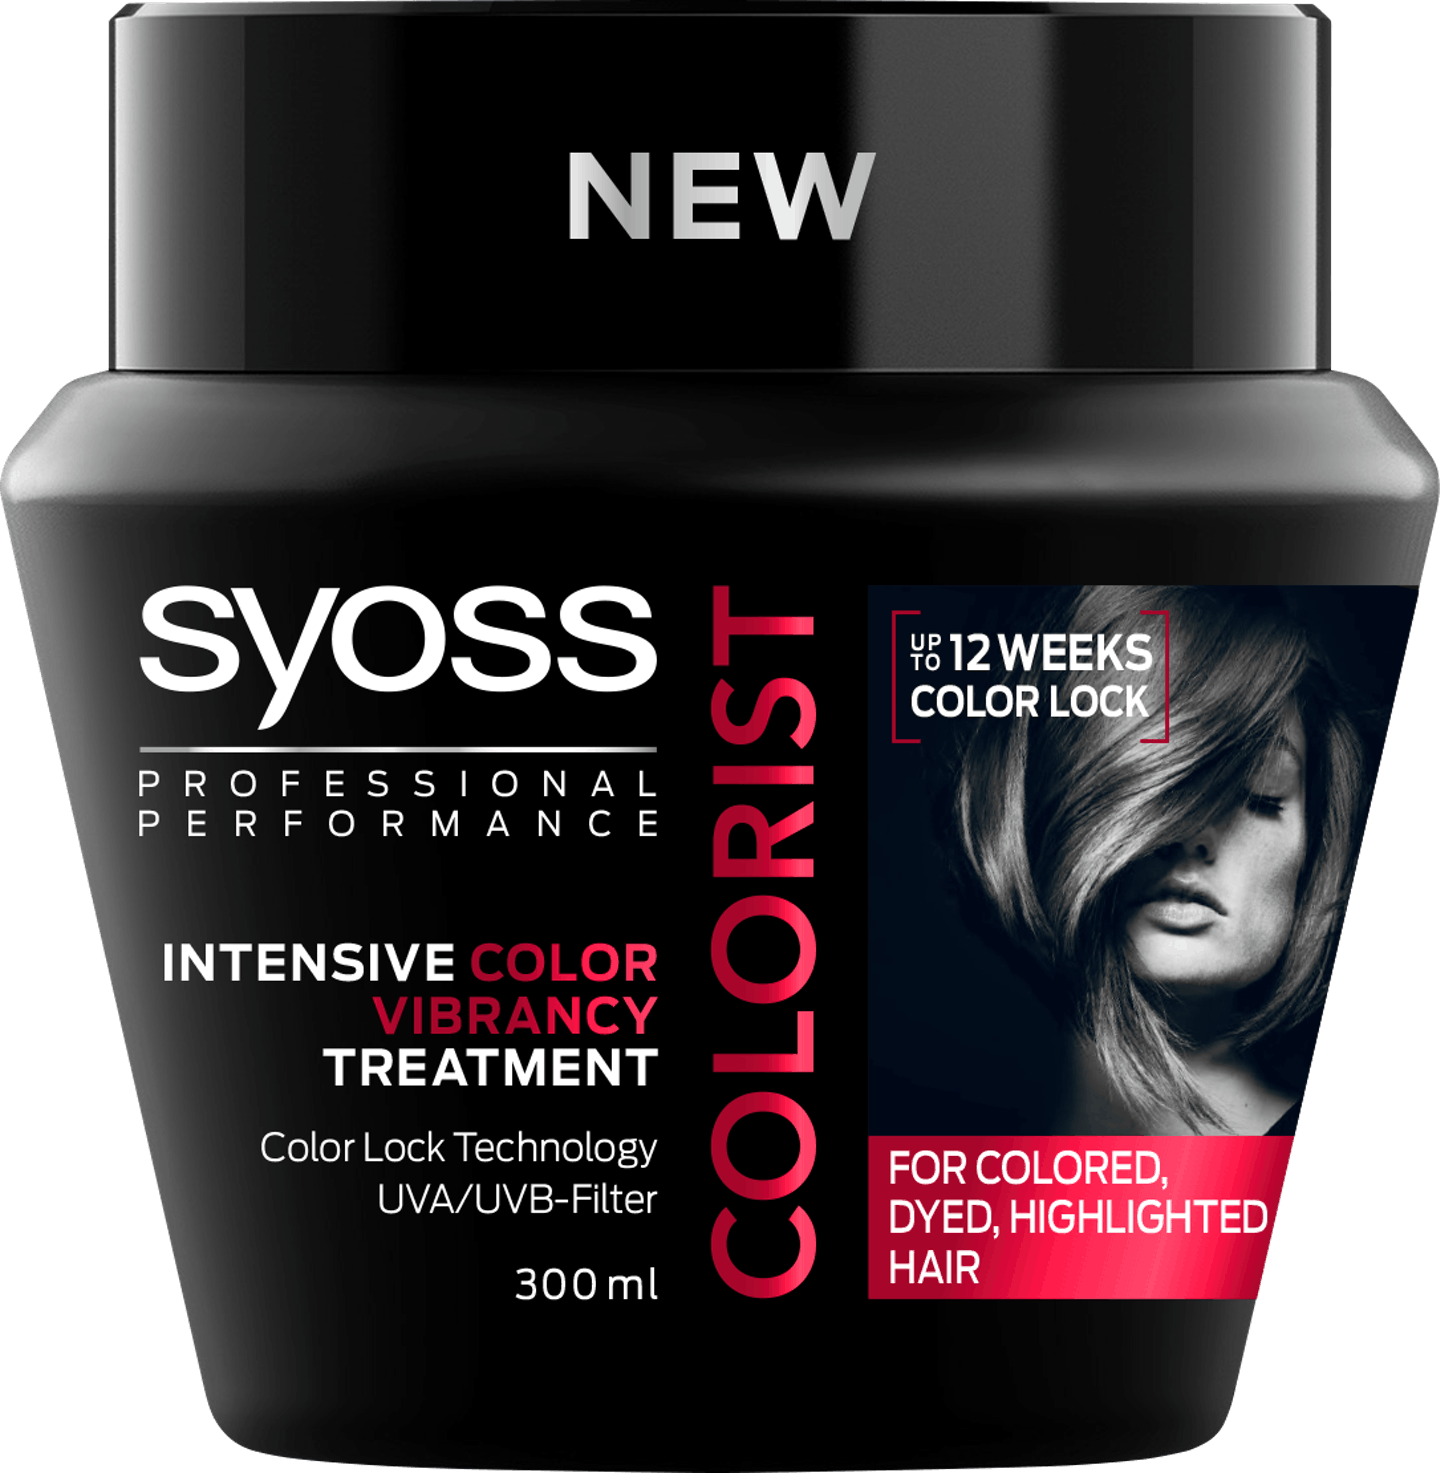 Syoss Colorist Intensive Color Vibrancy Treatment